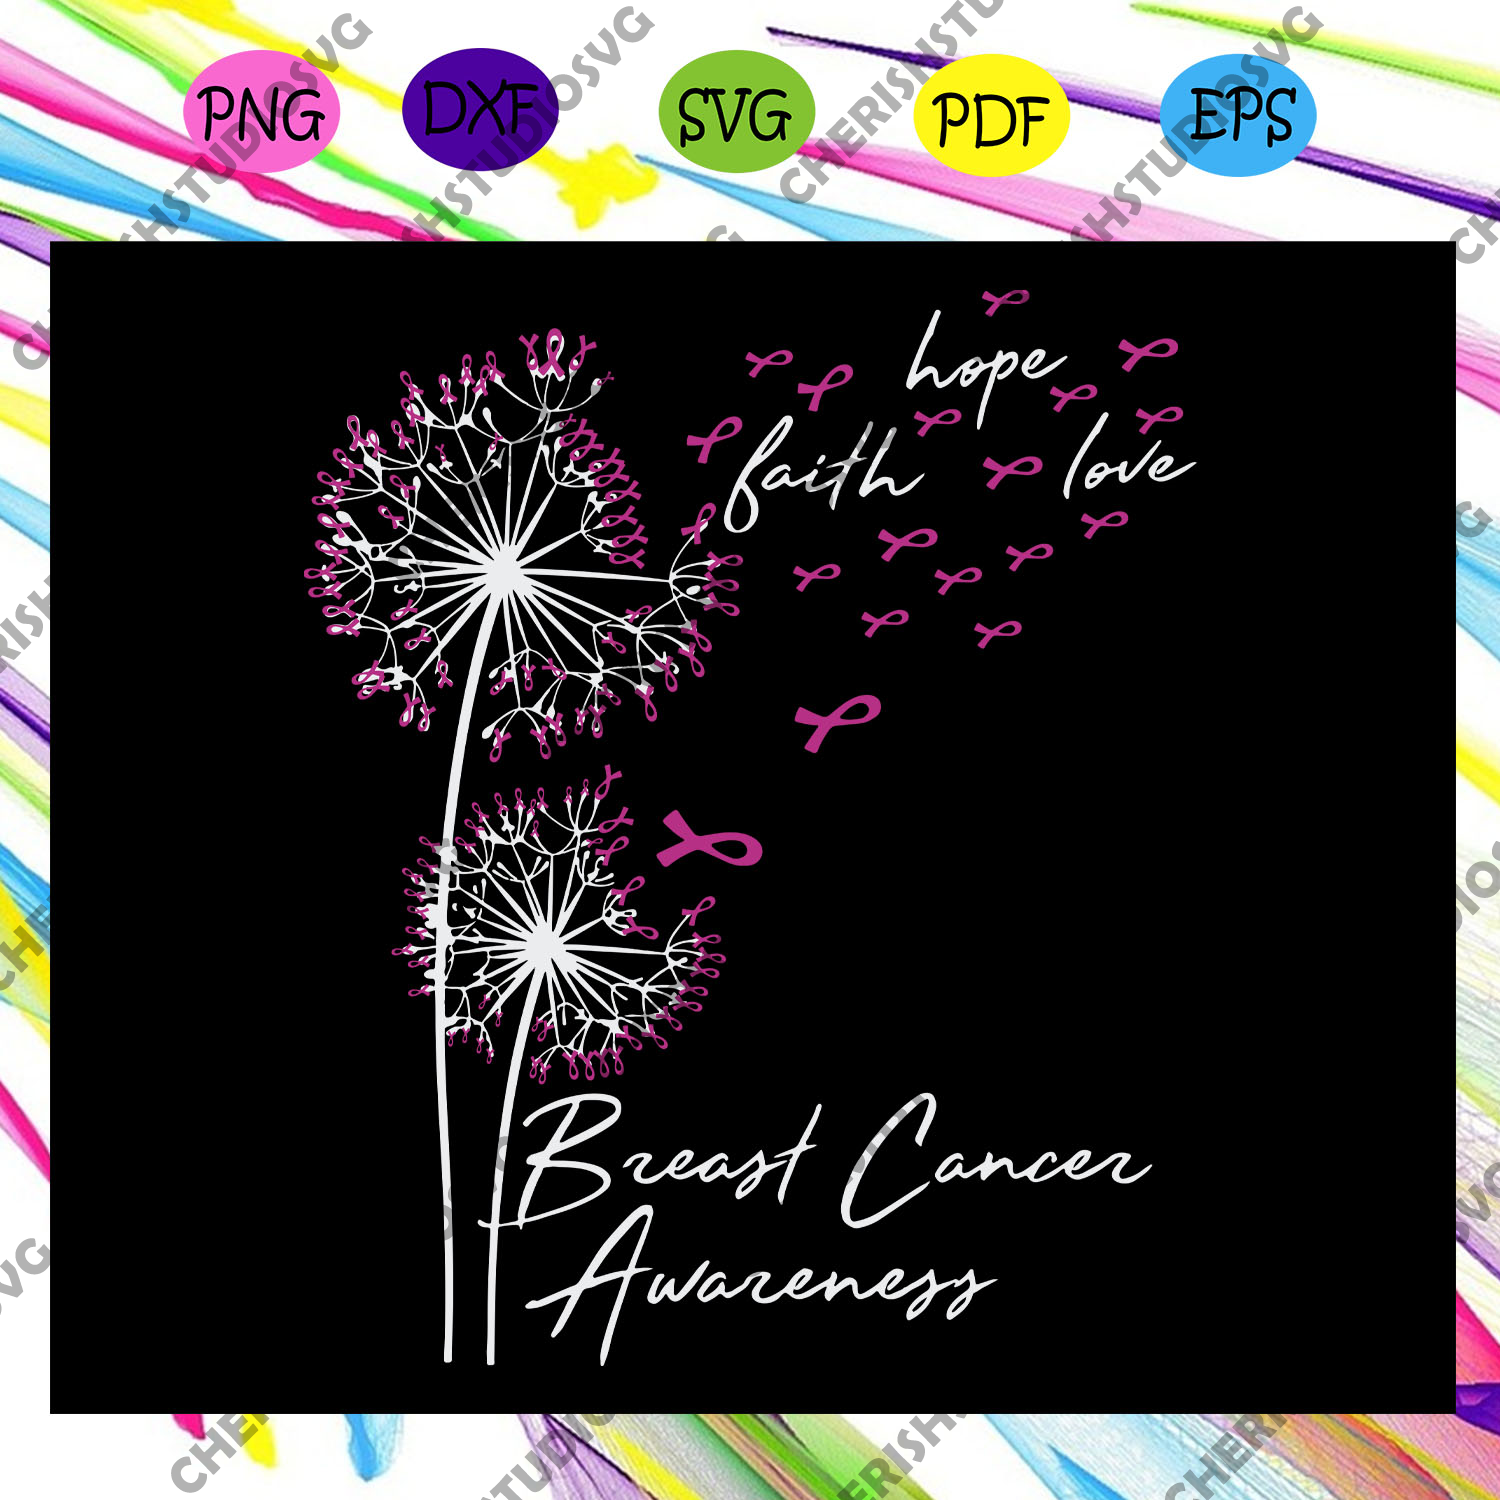 Breast cancer awareness, breast cancer, cancer svg, cancer ribbon, cancer awareness, cancer ribbon svg, trending svg For Silhouette, Files For Cricut, SVG, DXF, EPS, PNG Instant Download